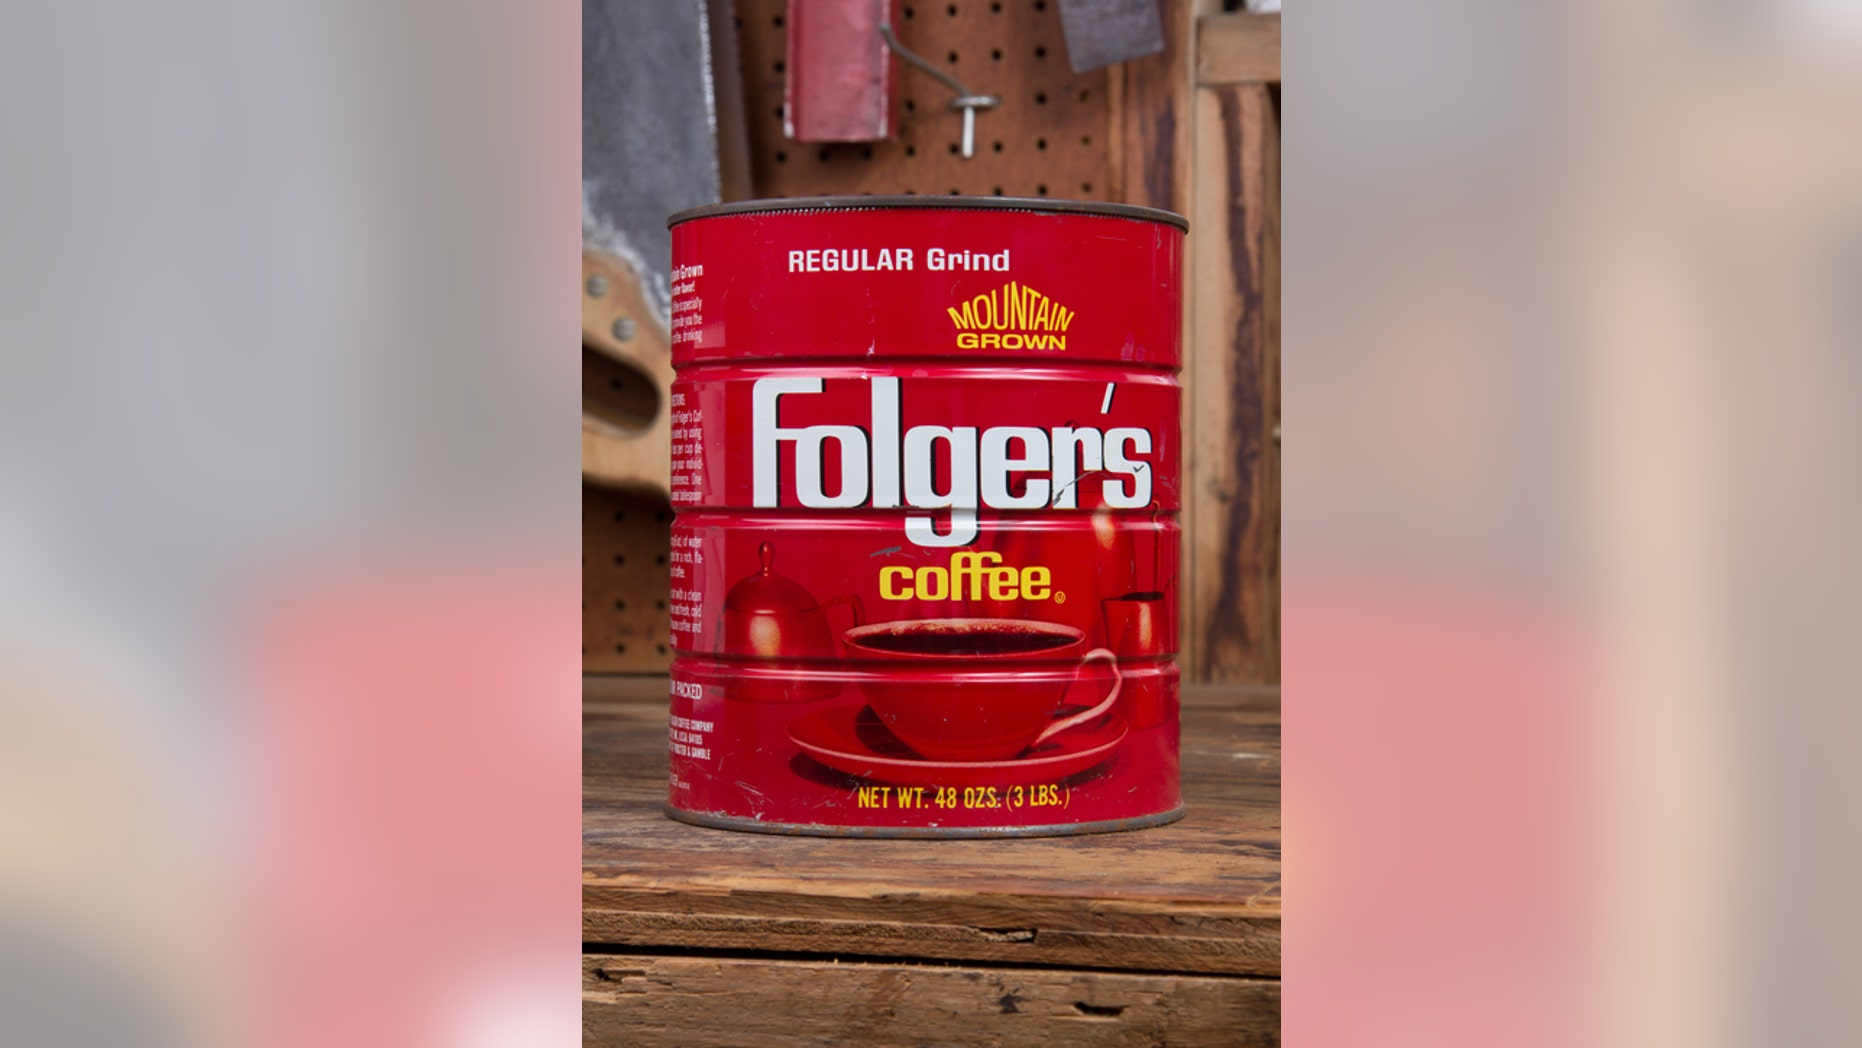 Joliet, IL- July 5, 2014: The coffee can remains a stand presence in the garage work space s a catch all for nails, bolts and miscellaneous items.